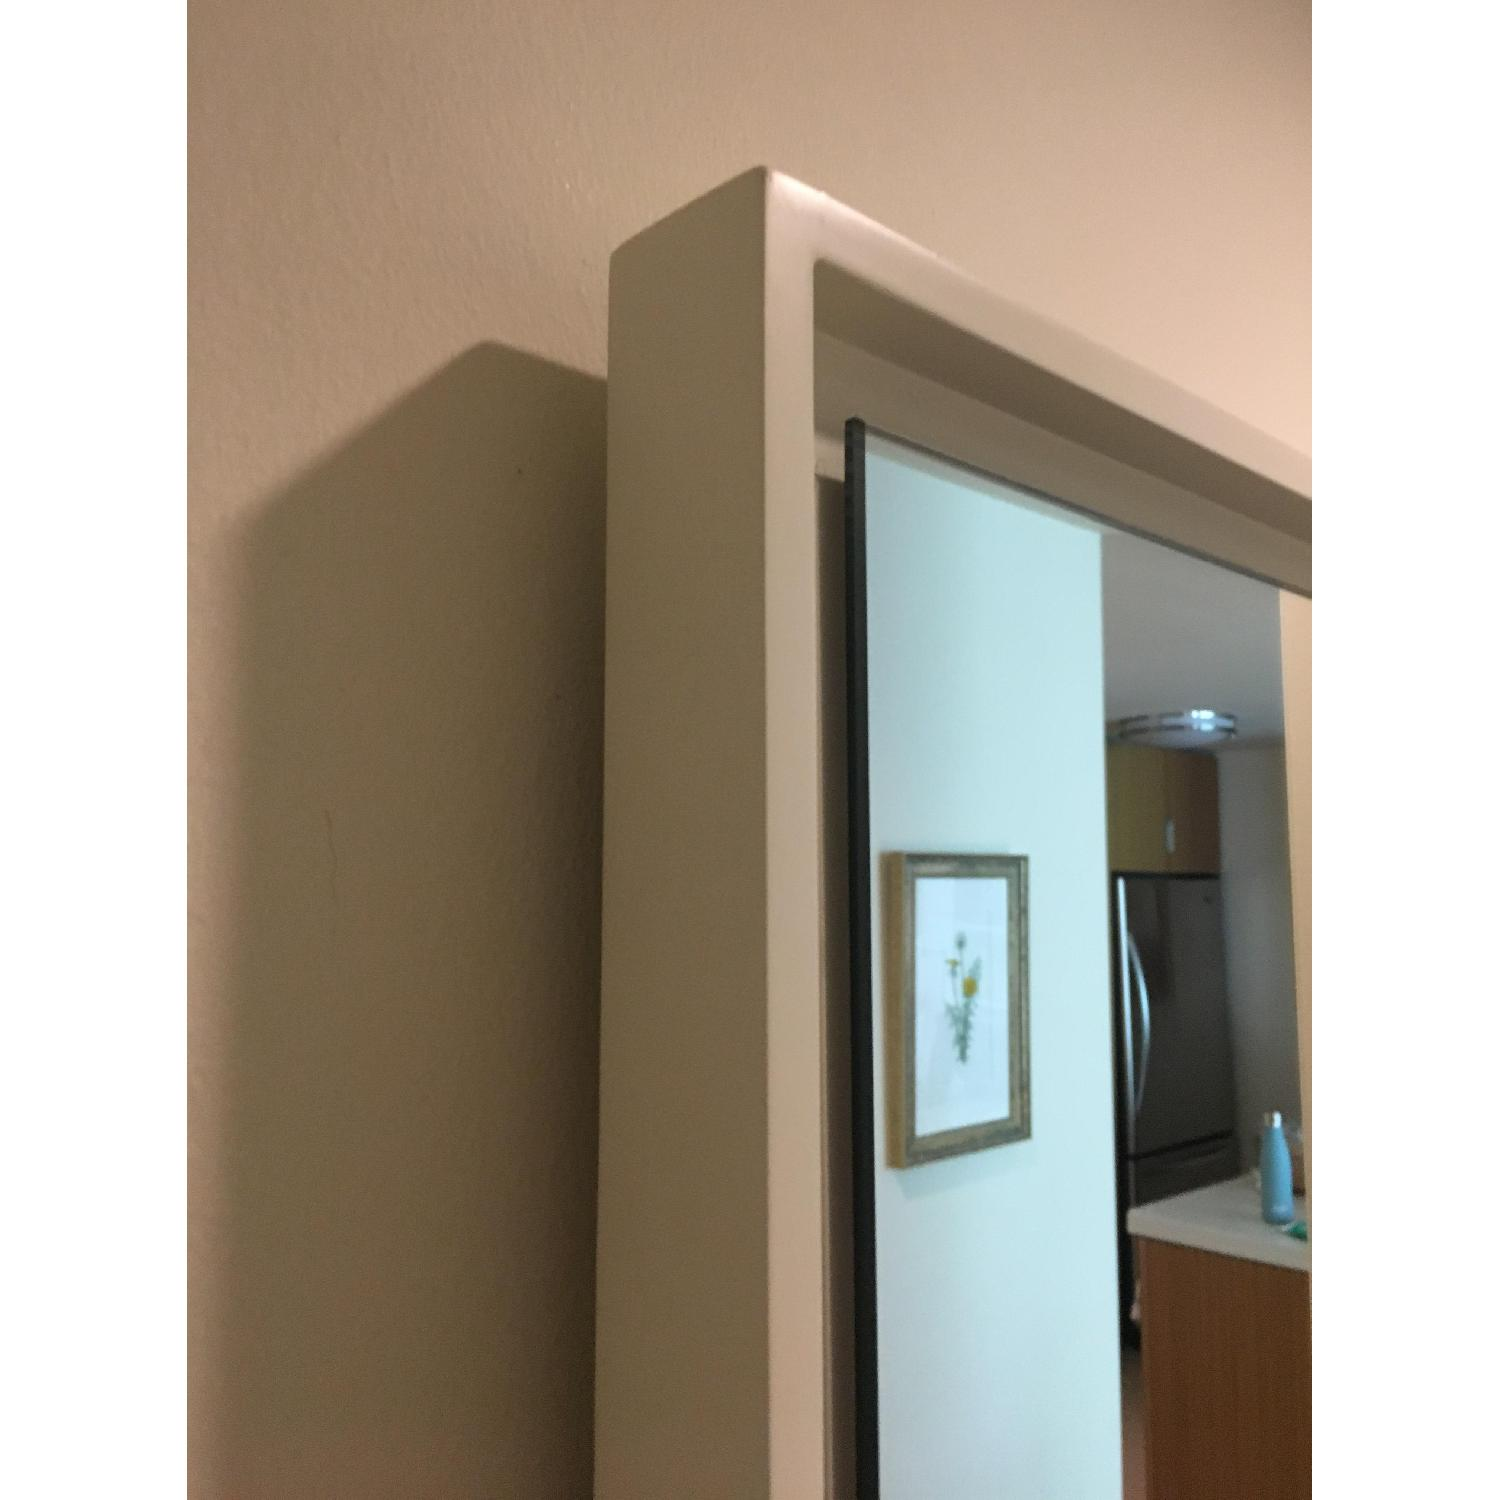 West Elm Floating Wood Wall Mirror in White - image-2